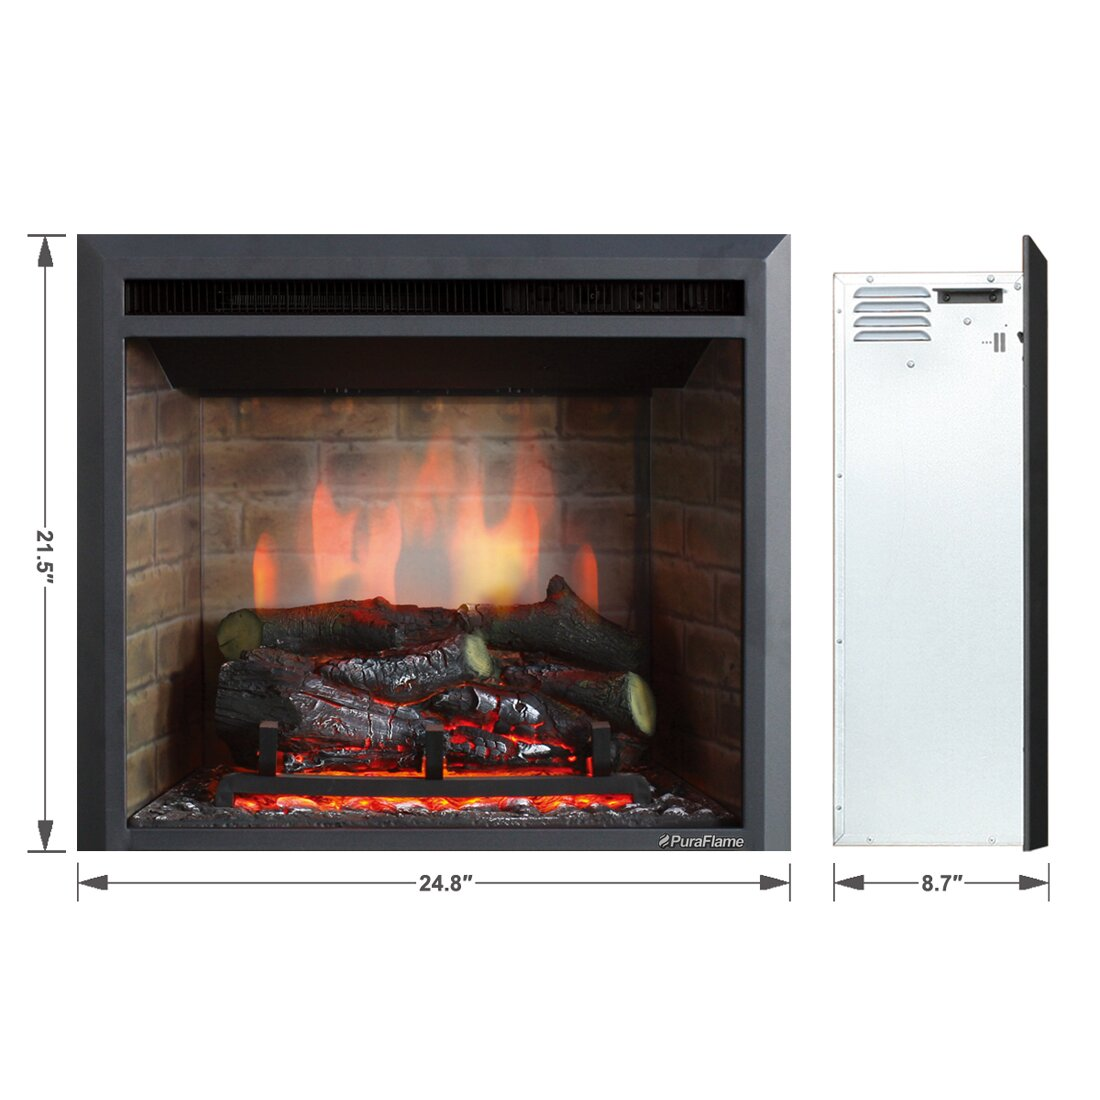 Puraflame 33 Black 750 1500w Western Wall Mount Electric Fireplace Insert Reviews Wayfair